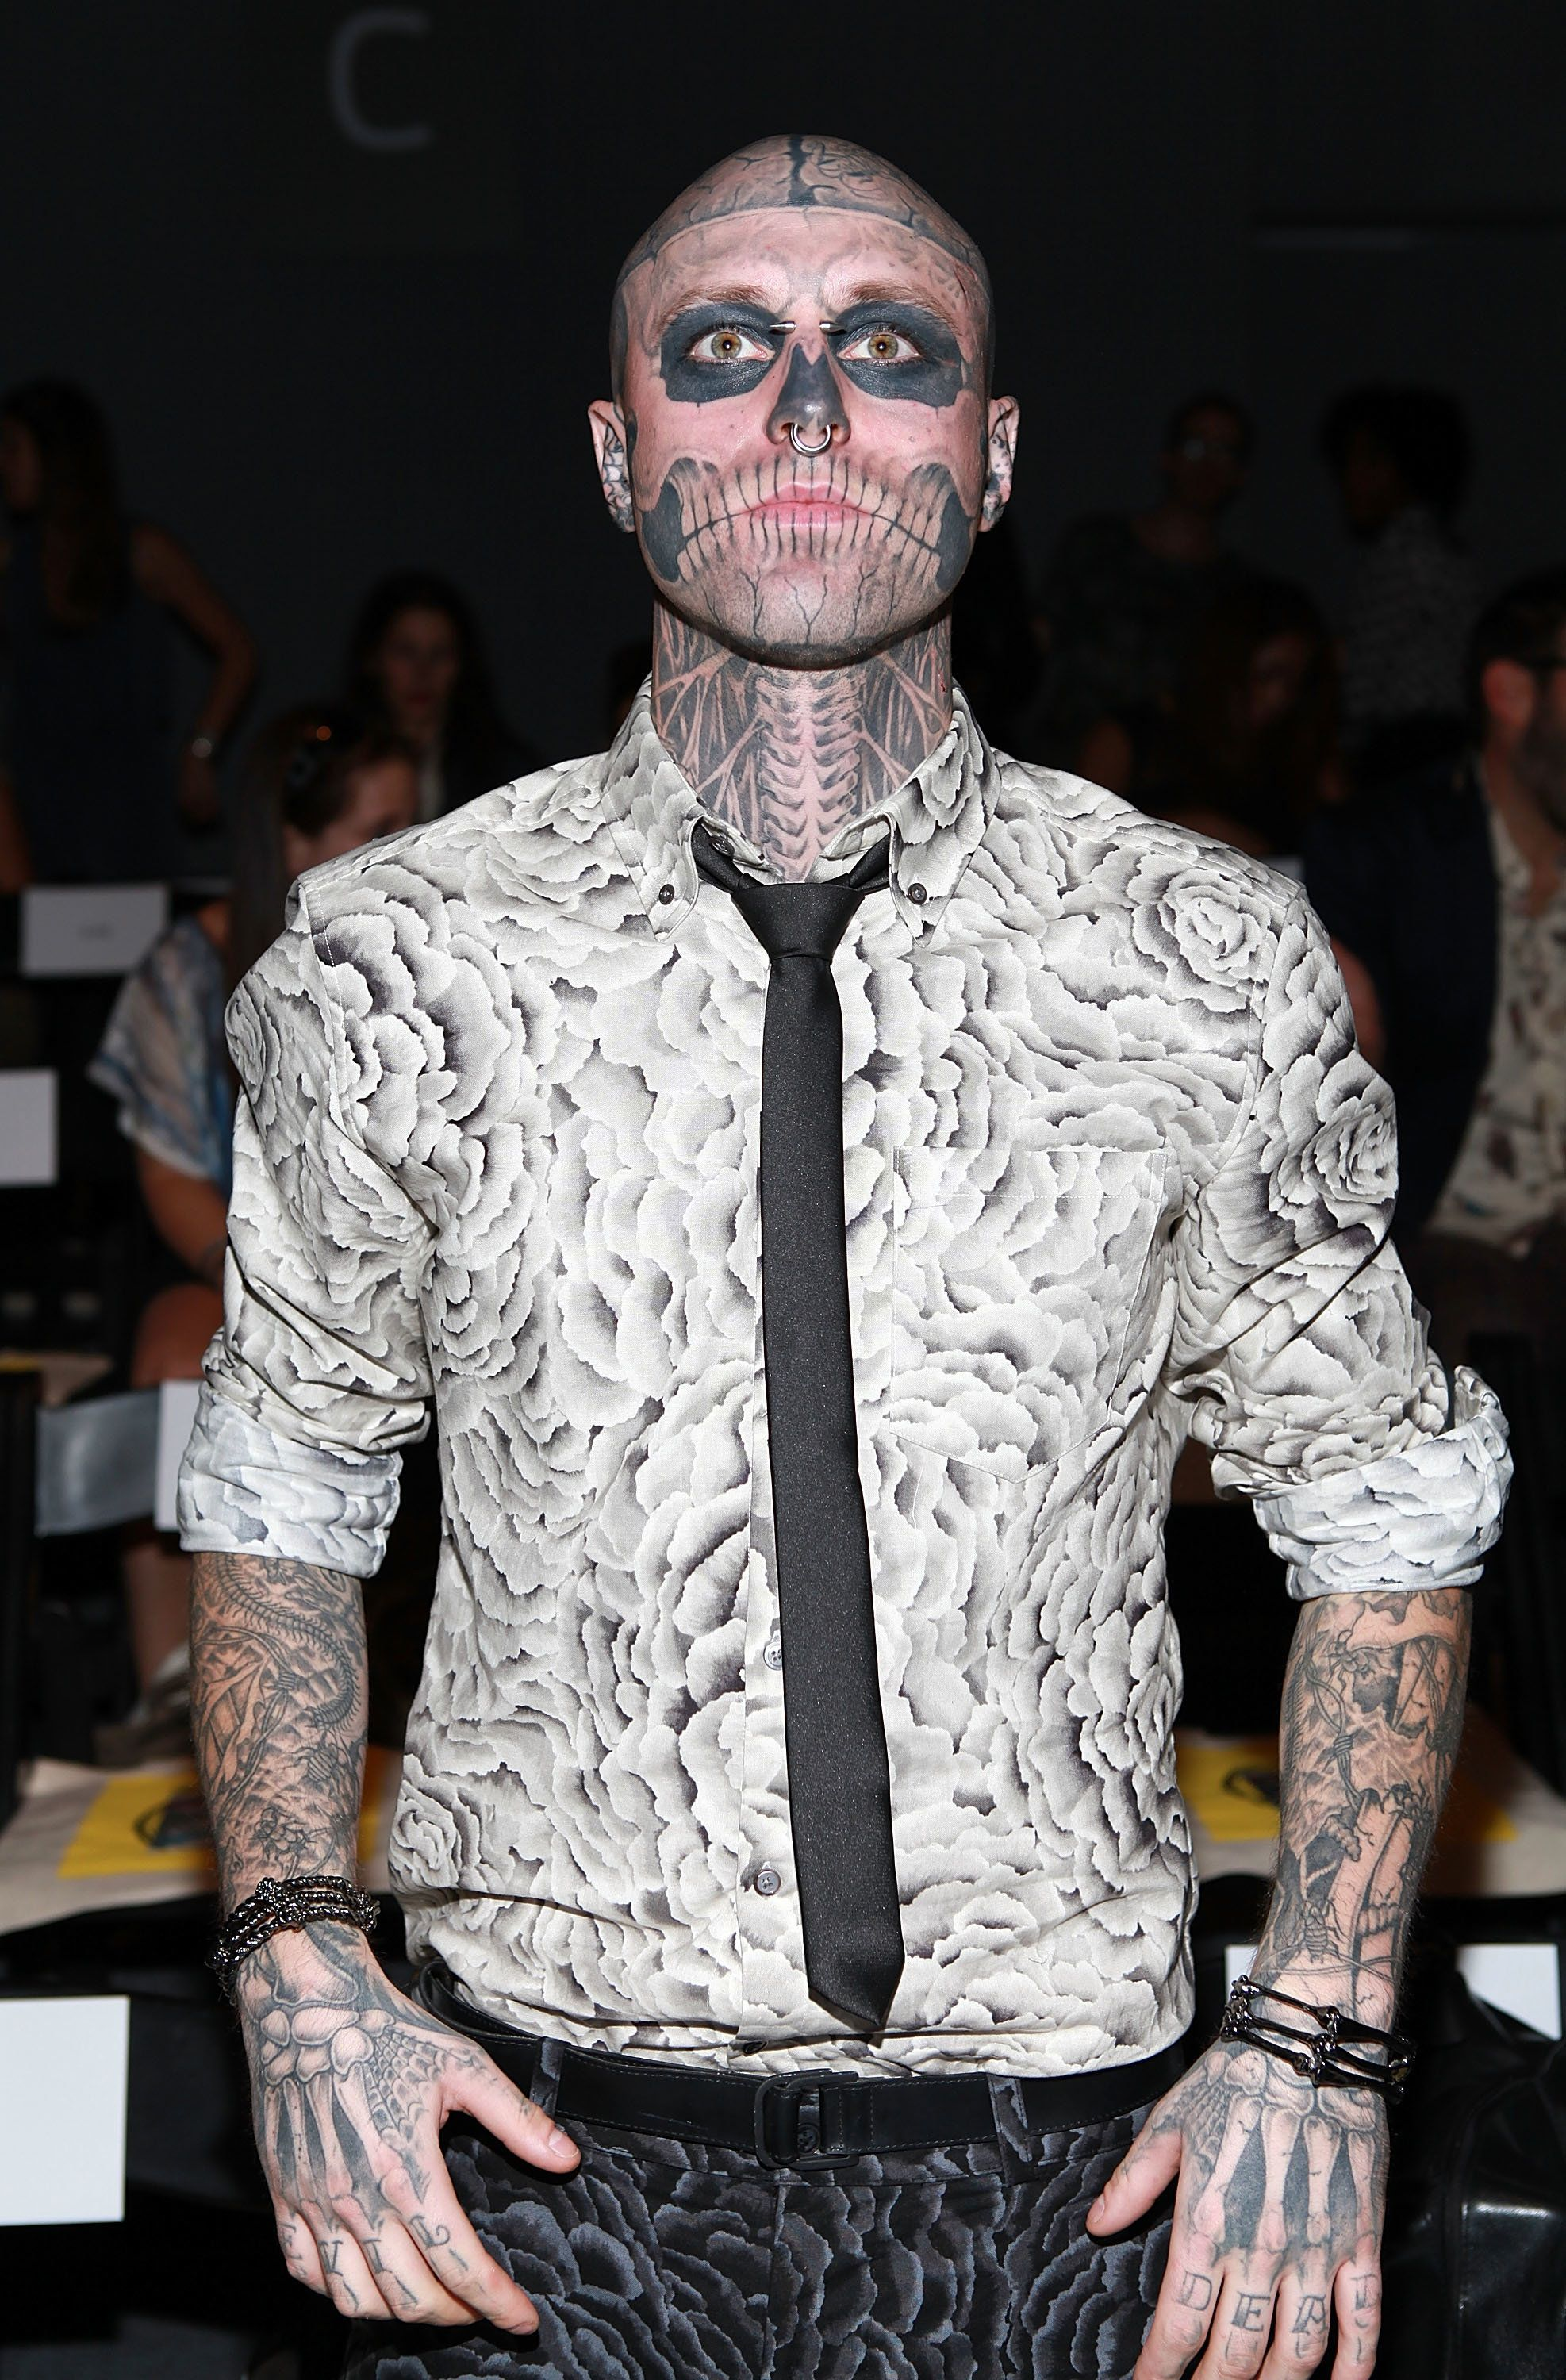 NEW YORK, NY - SEPTEMBER 09:  Rick 'Zombie Boy' Genest attends the Timo Weiland show during Spring 2013 Mercedes-Benz Fashion Week at The Studio Lincoln Center on September 9, 2012 in New York City.  (Photo by Robin Marchant/WireImage)